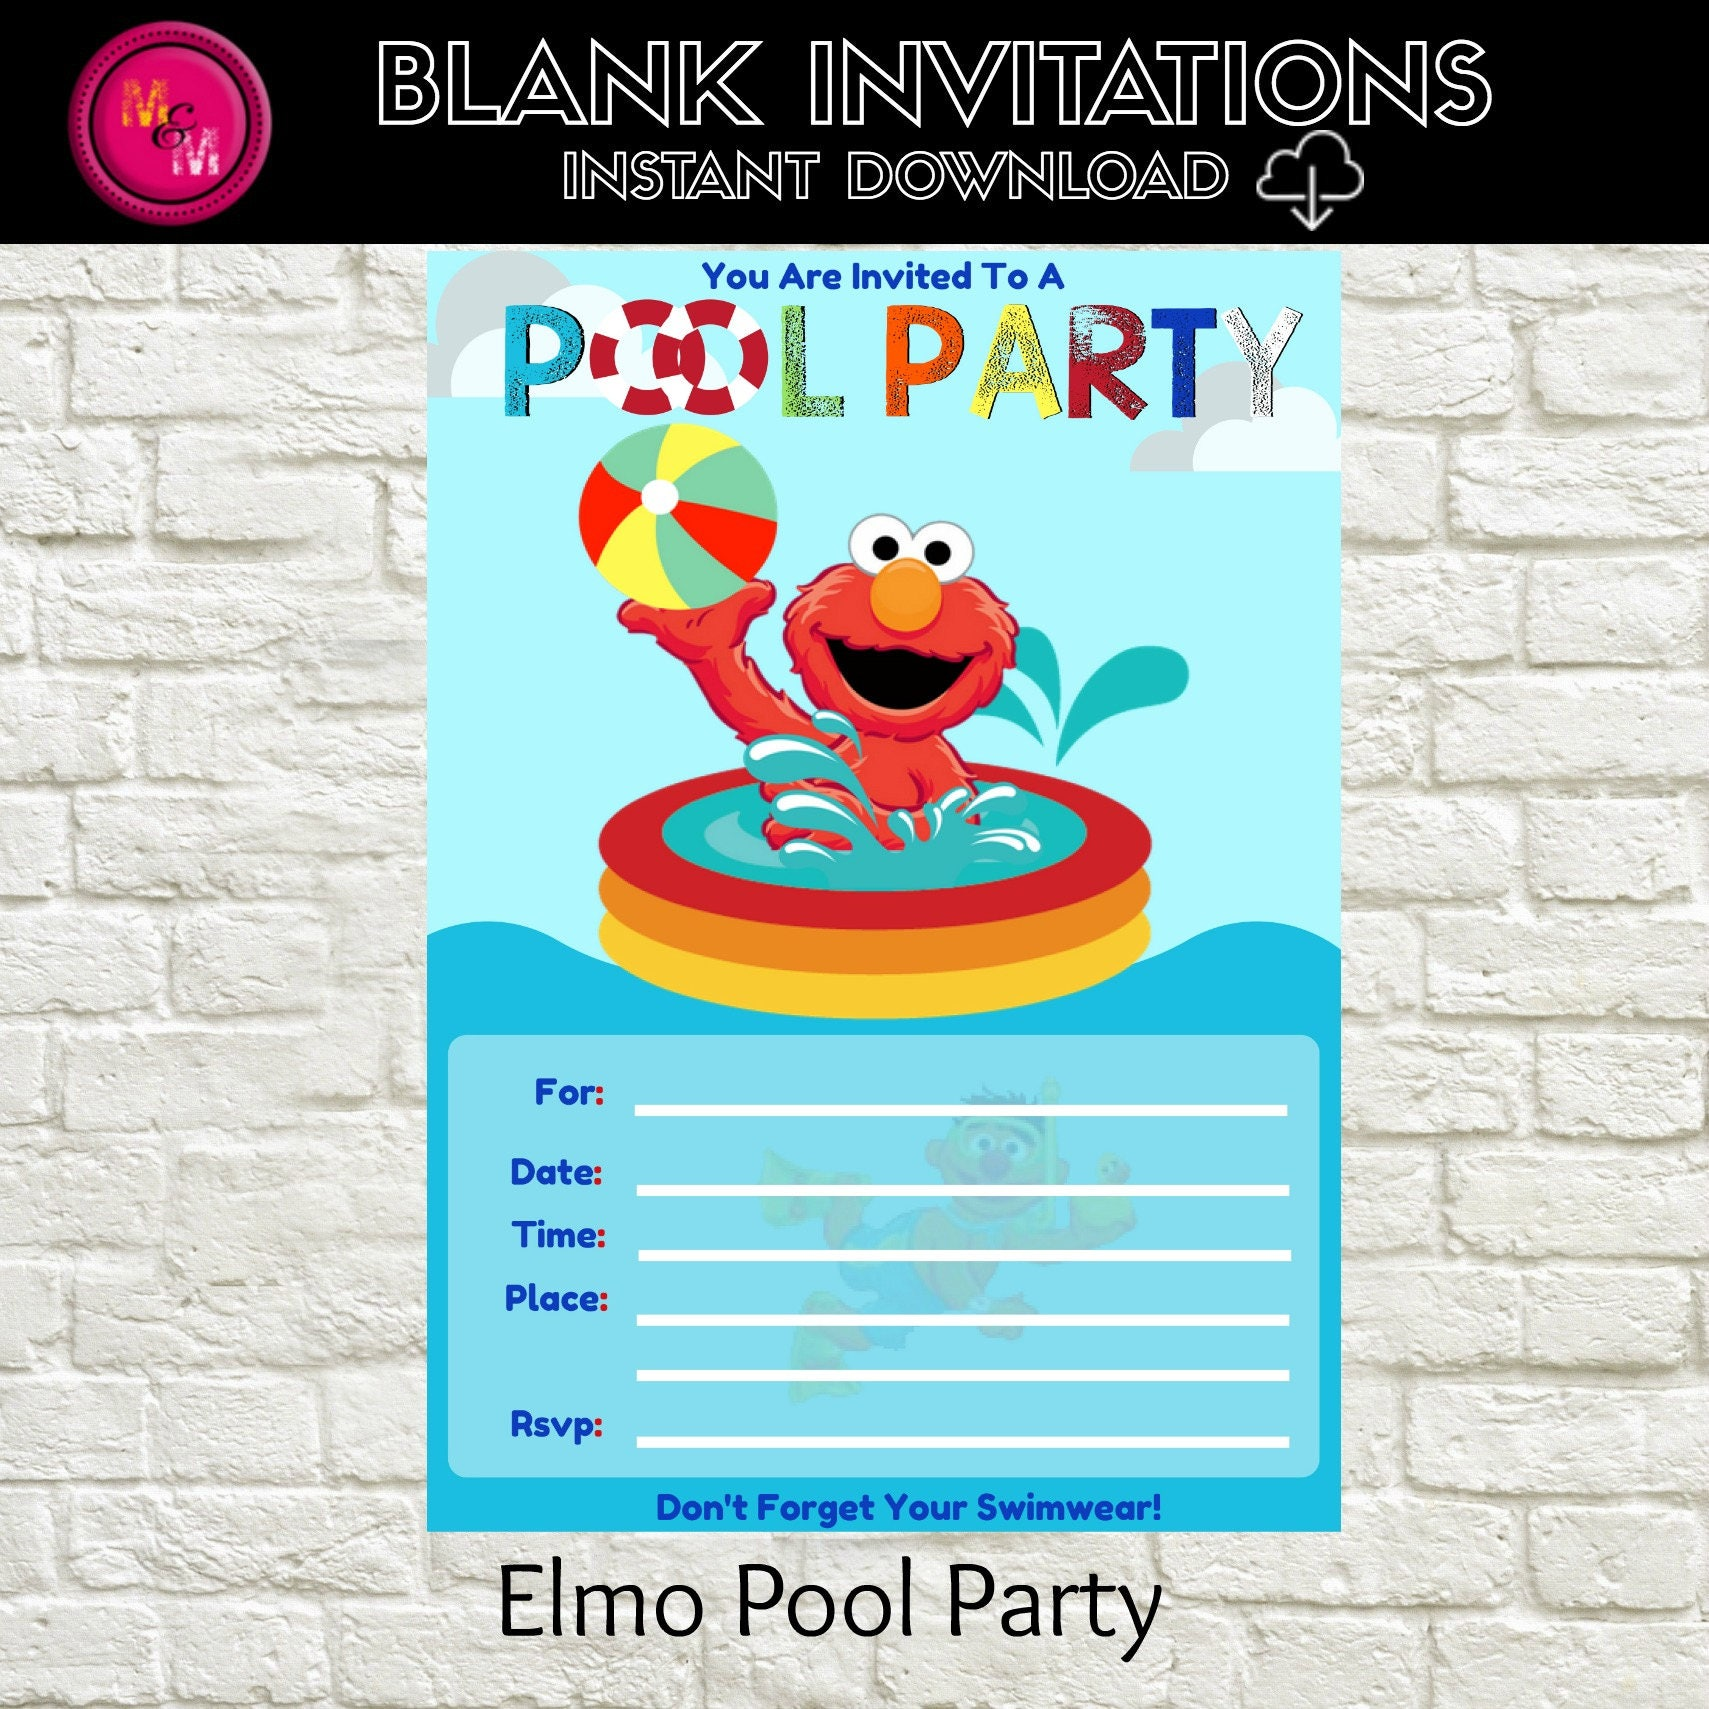 Elmo Pool Party Invitation BlankInstant Download Template – Blank Pool Party Invitations